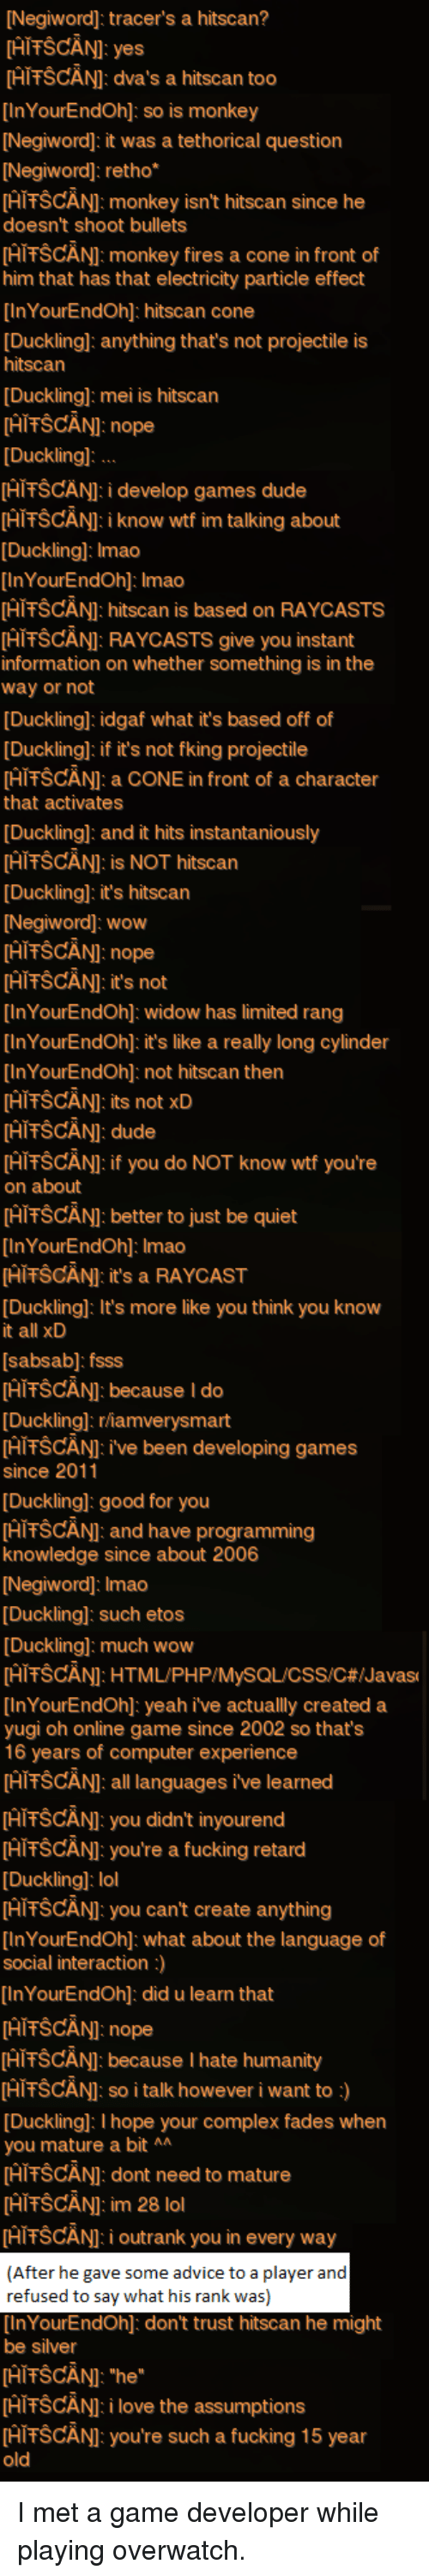 Advice, Complex, and Dude: [Negiword]: tracer's a hitscan?  [AİTSCANI: yes  HITSCANI: dva's a hitscan too  InYourEndOh]: so is monkey  [Negiword]: it was a tethorical question  [Negiword]: retho*  HiFŠCÄNI: monkey isn't hitscan since he  doesn't shoot bullets  HIFŠCÄNI: monkey fires a cone in front of  him that has that electricity particle effect  InYourEndOh]: hitscan cone  [Ducklingl: anything that's not projectile is  hitscan  Duckling]: mei is hitscan  HiFŠCÄNI: nope  [Ducklingl  HIFŠCÄNI: i develop games dude  HITSCANI:i know wtf im talking about  Duckling]: Imao  InYourEndOh]: Imao  HIFSCÄN]: hitscan is based on RAYCASTS  HITSCANI: RAYCASTS give you instant  information on whether something is in the  way or not  [Ducklingl: idgaf what it's based off of  [Ducklingl: if it's not fking projectile  HIFŠCÄNI: a CONE in front of a character  that activates  Duckling]: and it hits instantaniously  HIFSCÄN]: is NOT hitscan  Ducklingl: it's hitscan  [Negiword]: wow  HITSCANI: nope  [HITŠCANI: it's not  InYourEndOh]: widow has limited rang  InYourEndOh]: it's like a really long cylinder  InYourEndOh]: not hitscan then  HIFSCÄNI: its not xD  HIFŠCÄNI: dude  HITSCÄNI: if you do NOT know wtf you're  on about  HITSCANI: better to just be quiet  InYourEndOh]: Imao  [HİTSCANI: it's a RAYCAST  Duckling]: It's more like you think you know  it all xD  [sabsab]: fsss  HIFSCÄN]: because I do  Ducklingl: rhamverysmart  HIFŠCÄNI: ive been developing games  since 2011  Duckling]: good for you  PİTŠCANI: and have programming  knowledge since about 2006  [Negiword]: Imao  Duckling]: such etos  Ducklingl: much wow  [HITSCANI: HTML/PHP/MySQL/CSS/C#/Javas  [InYourEndOh]: yeah i've actuallly created a  yugi oh online game since 2002 so thats  16 years of computer experience  [HİTSCANI: all languages ive learned  HITSCANI: you didn't inyourend  FİTŠCANI: you're a fucking retard  [Ducklingl: lol  HIFŠCÄNI: you can't create anything  [InYourEndOh]: what about the language of  social interac